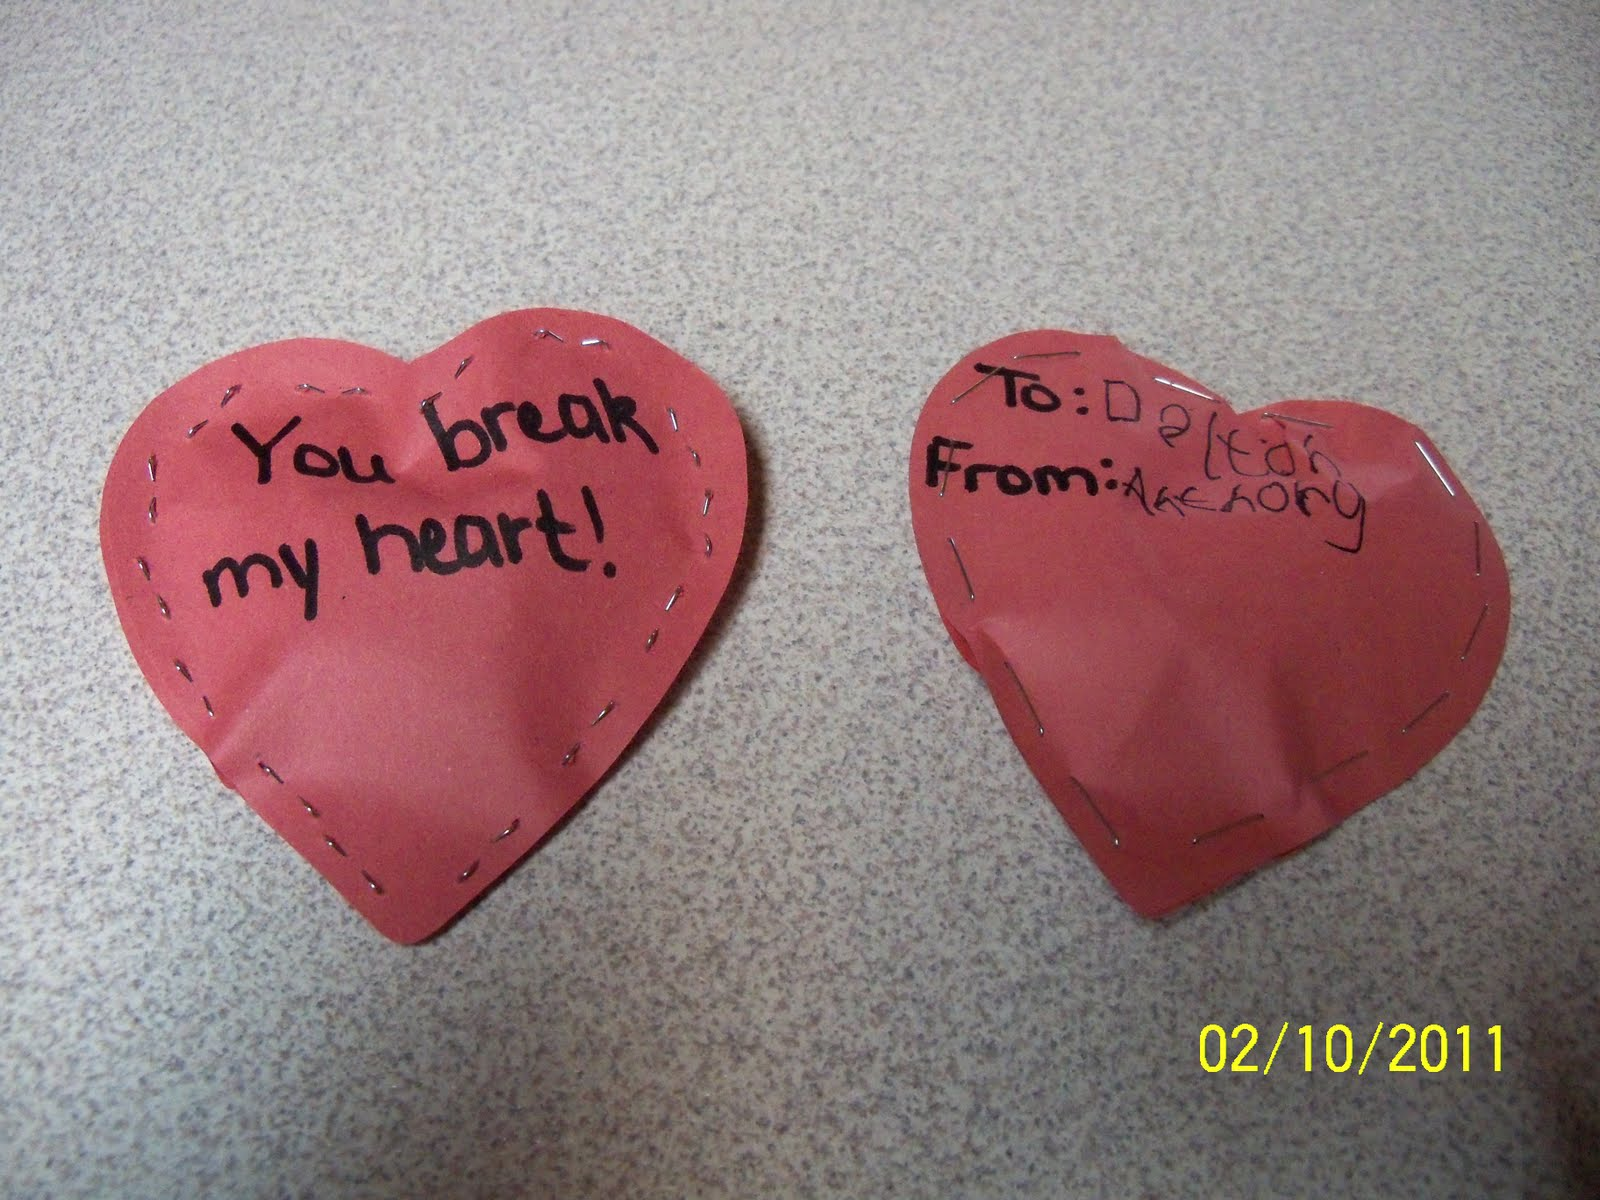 Why Did U Brea Why Did U Break My Heart Quotes Broke My Heart